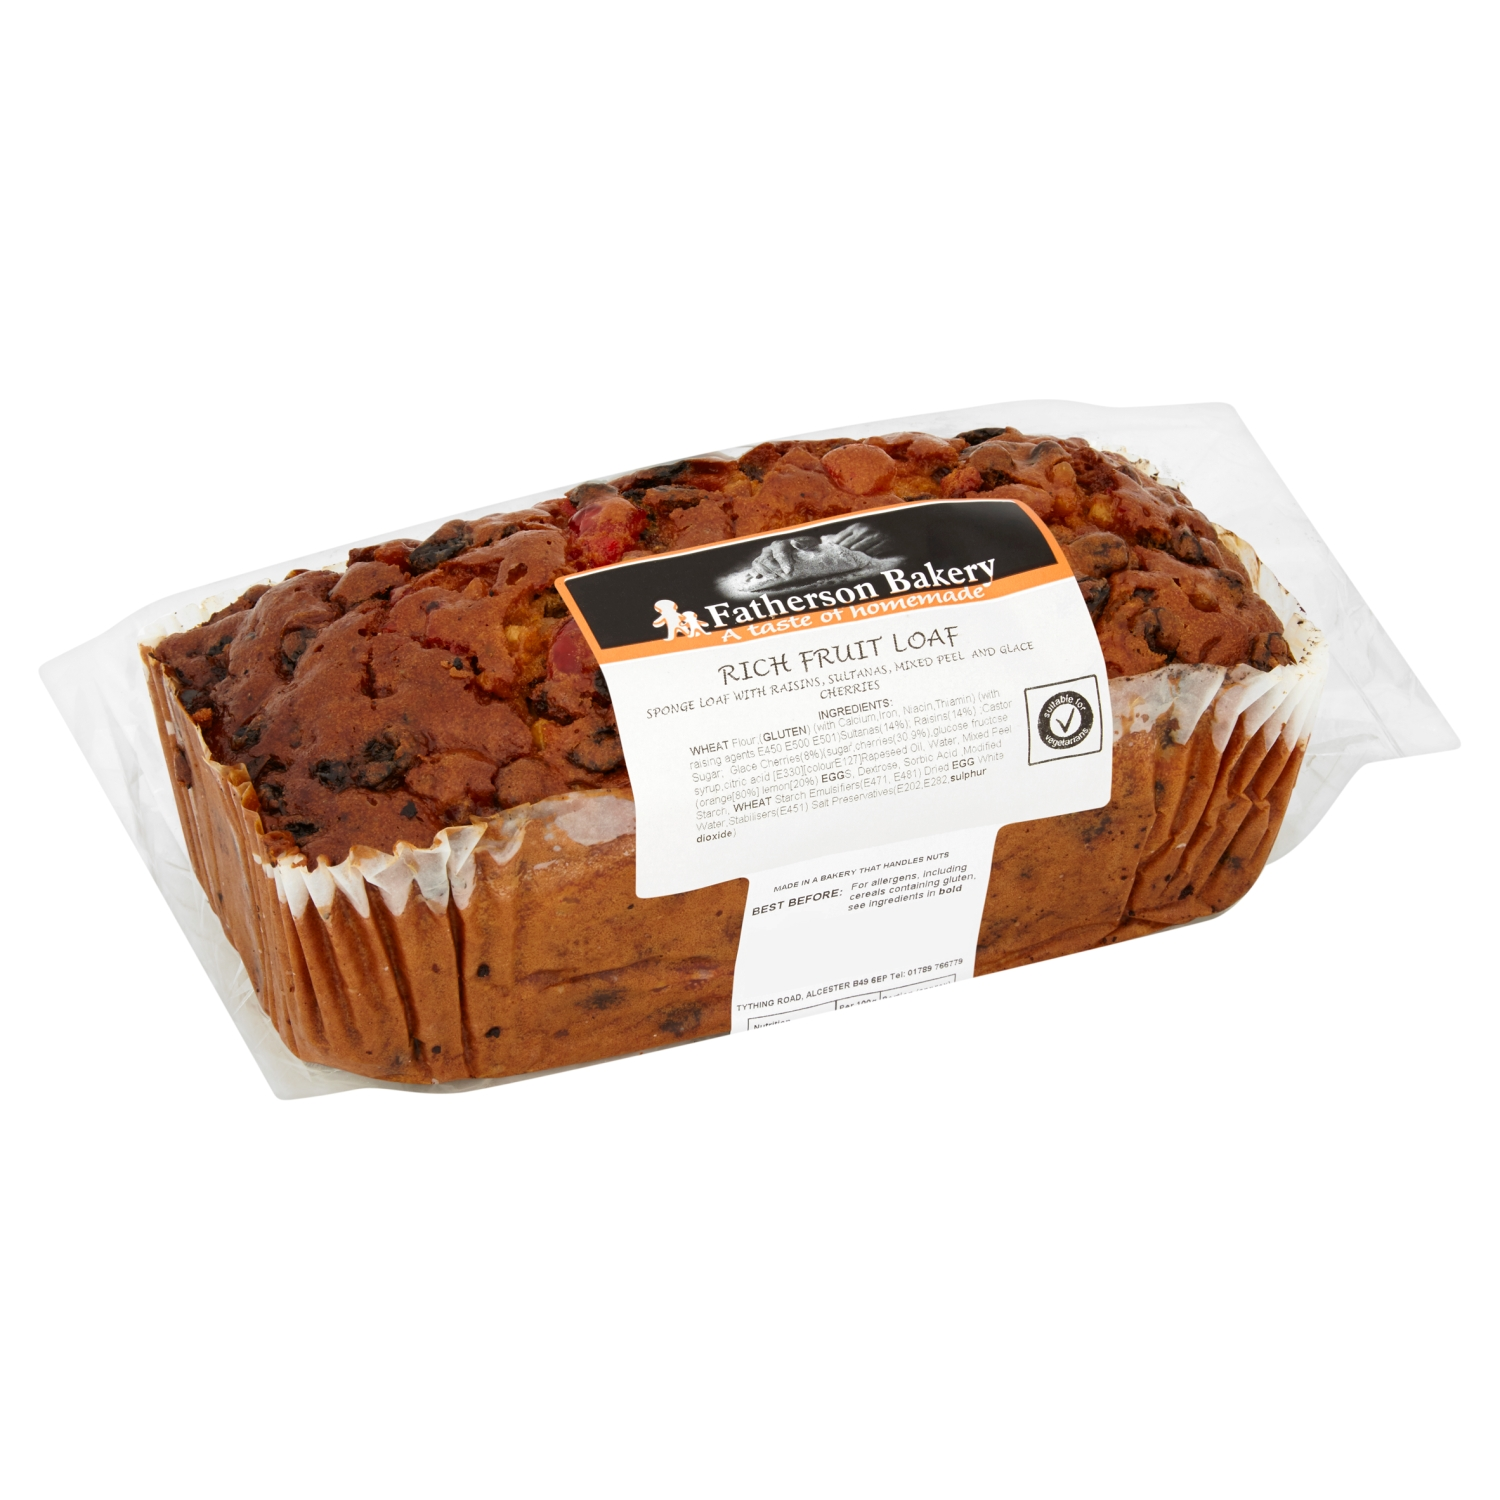 Fatherson Bakery Rich Fruit Loaf